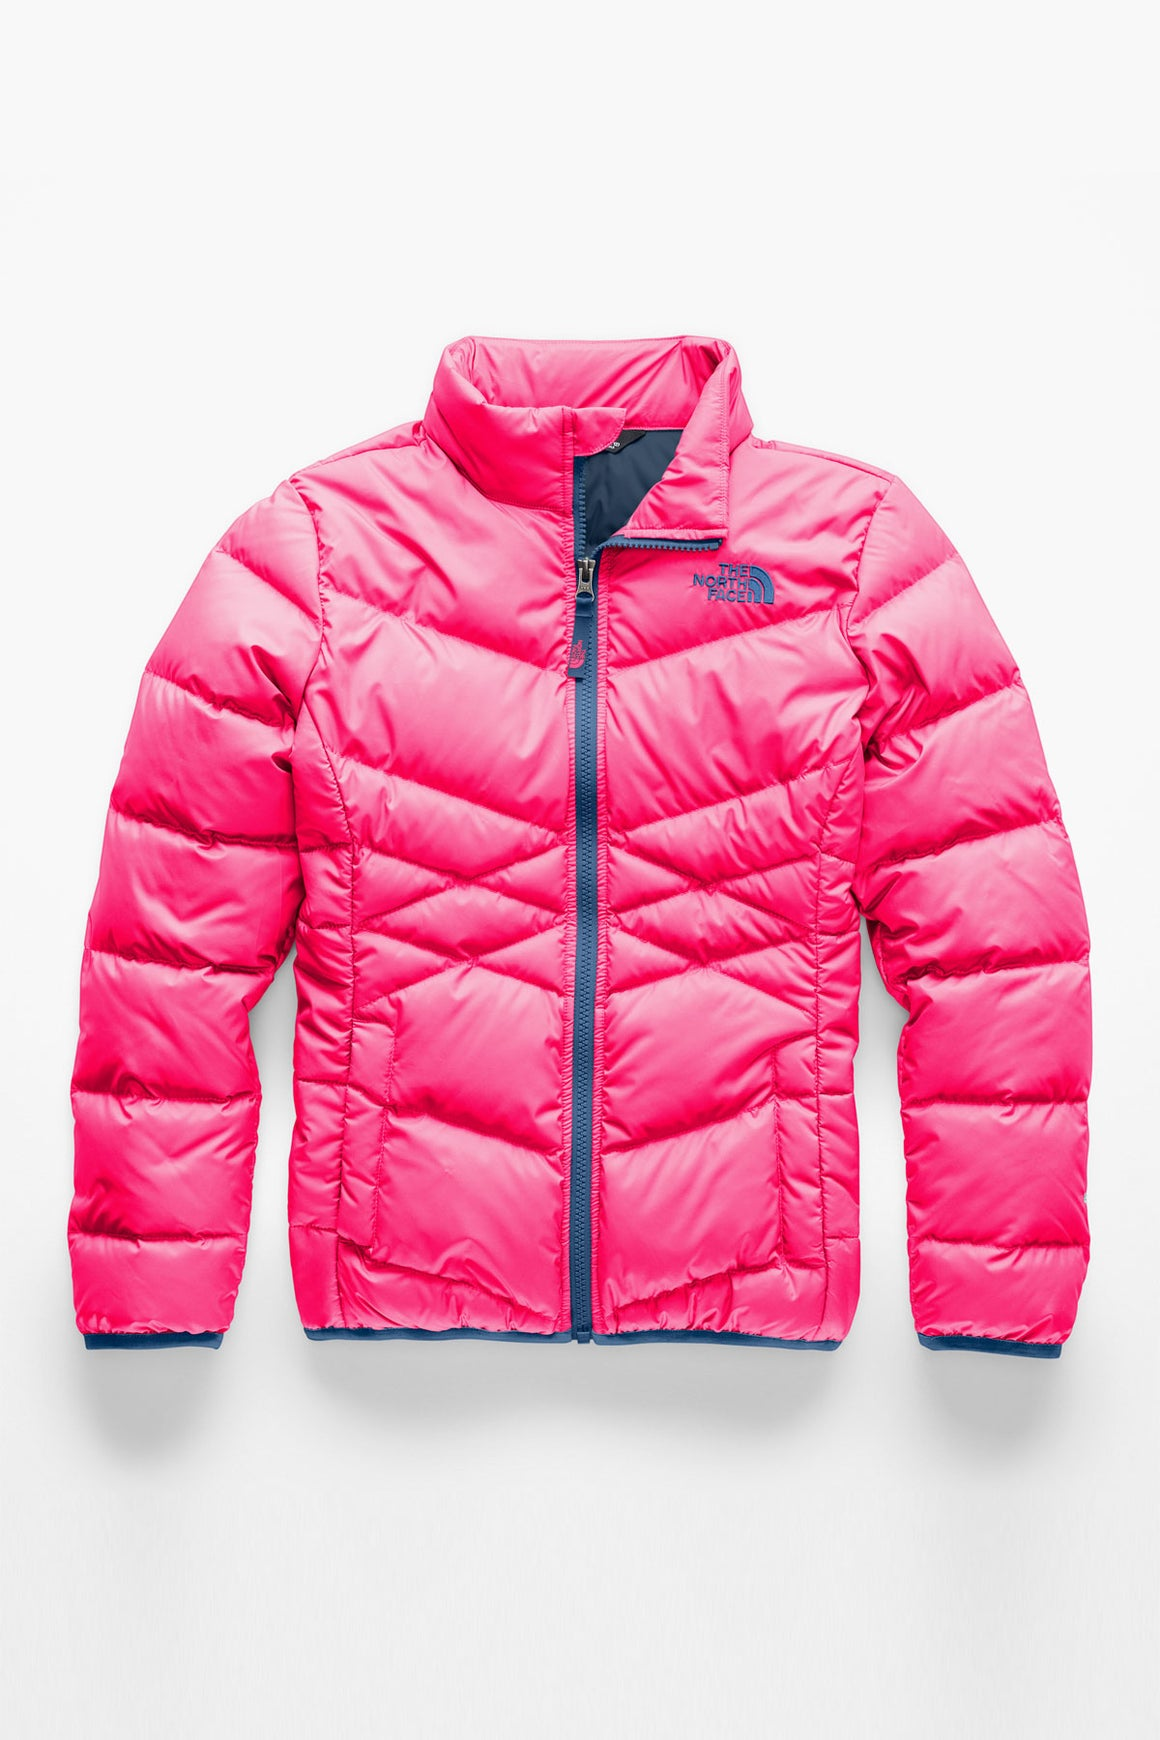 The North Face Girls Andes Down Jacket - Atomic Pink